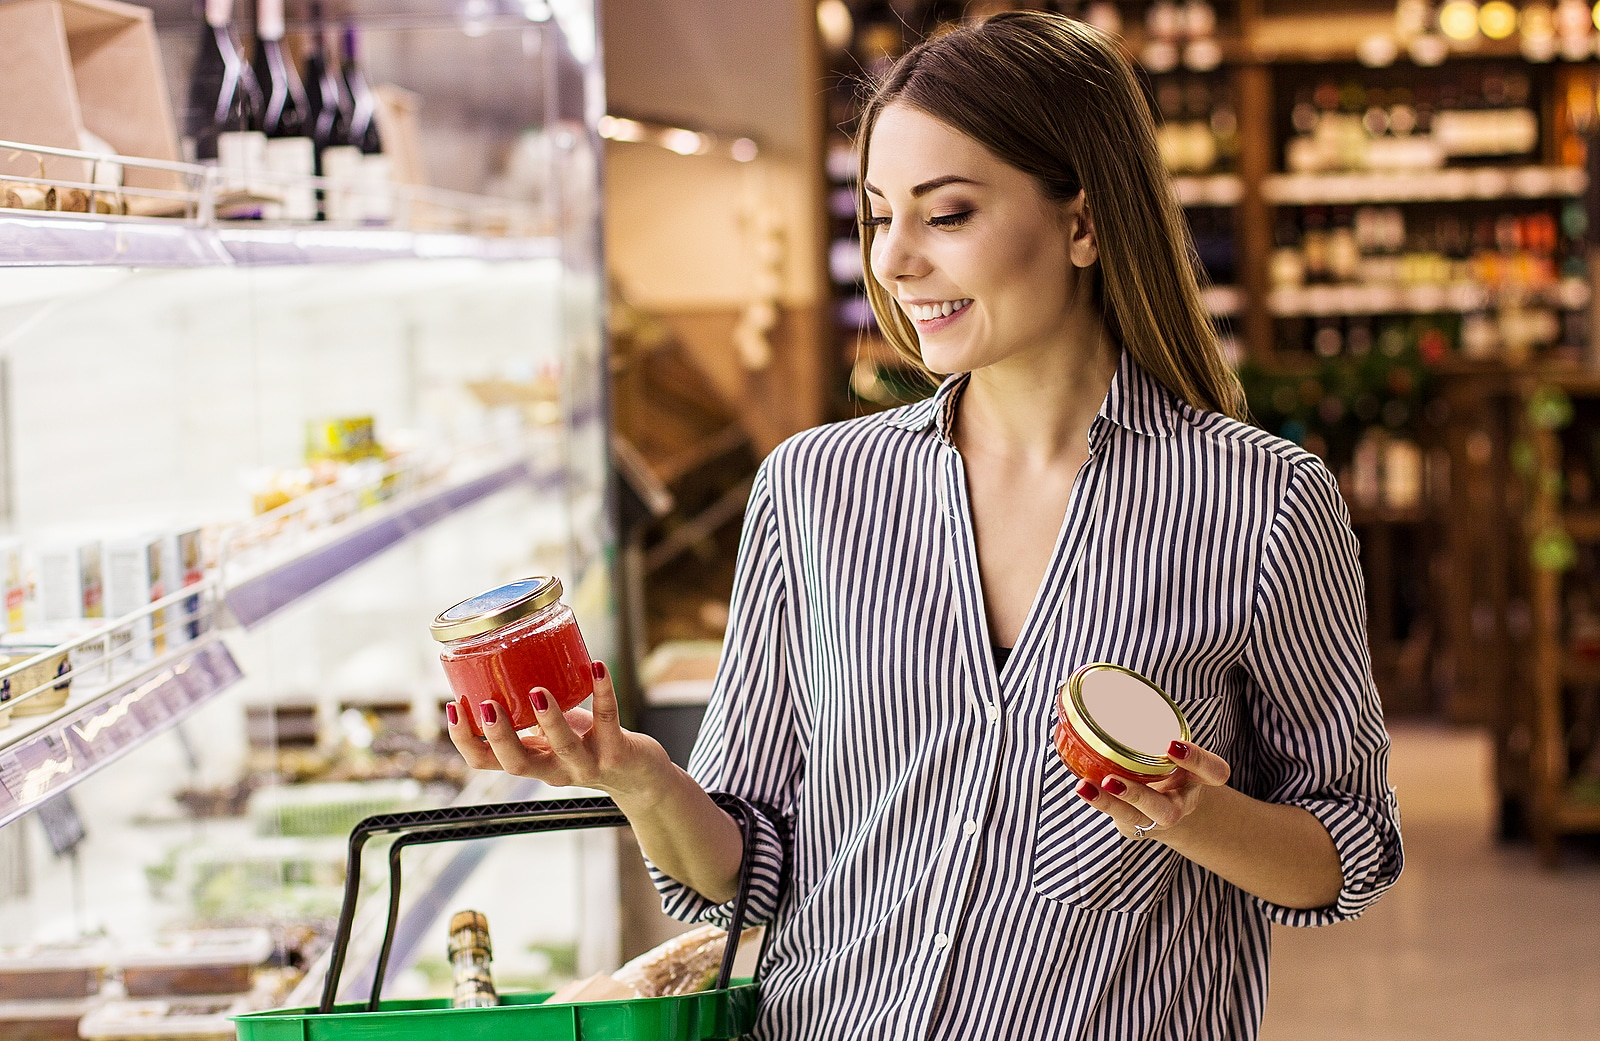 Woman shopping smart with glass containers to reduce exposure to toxins